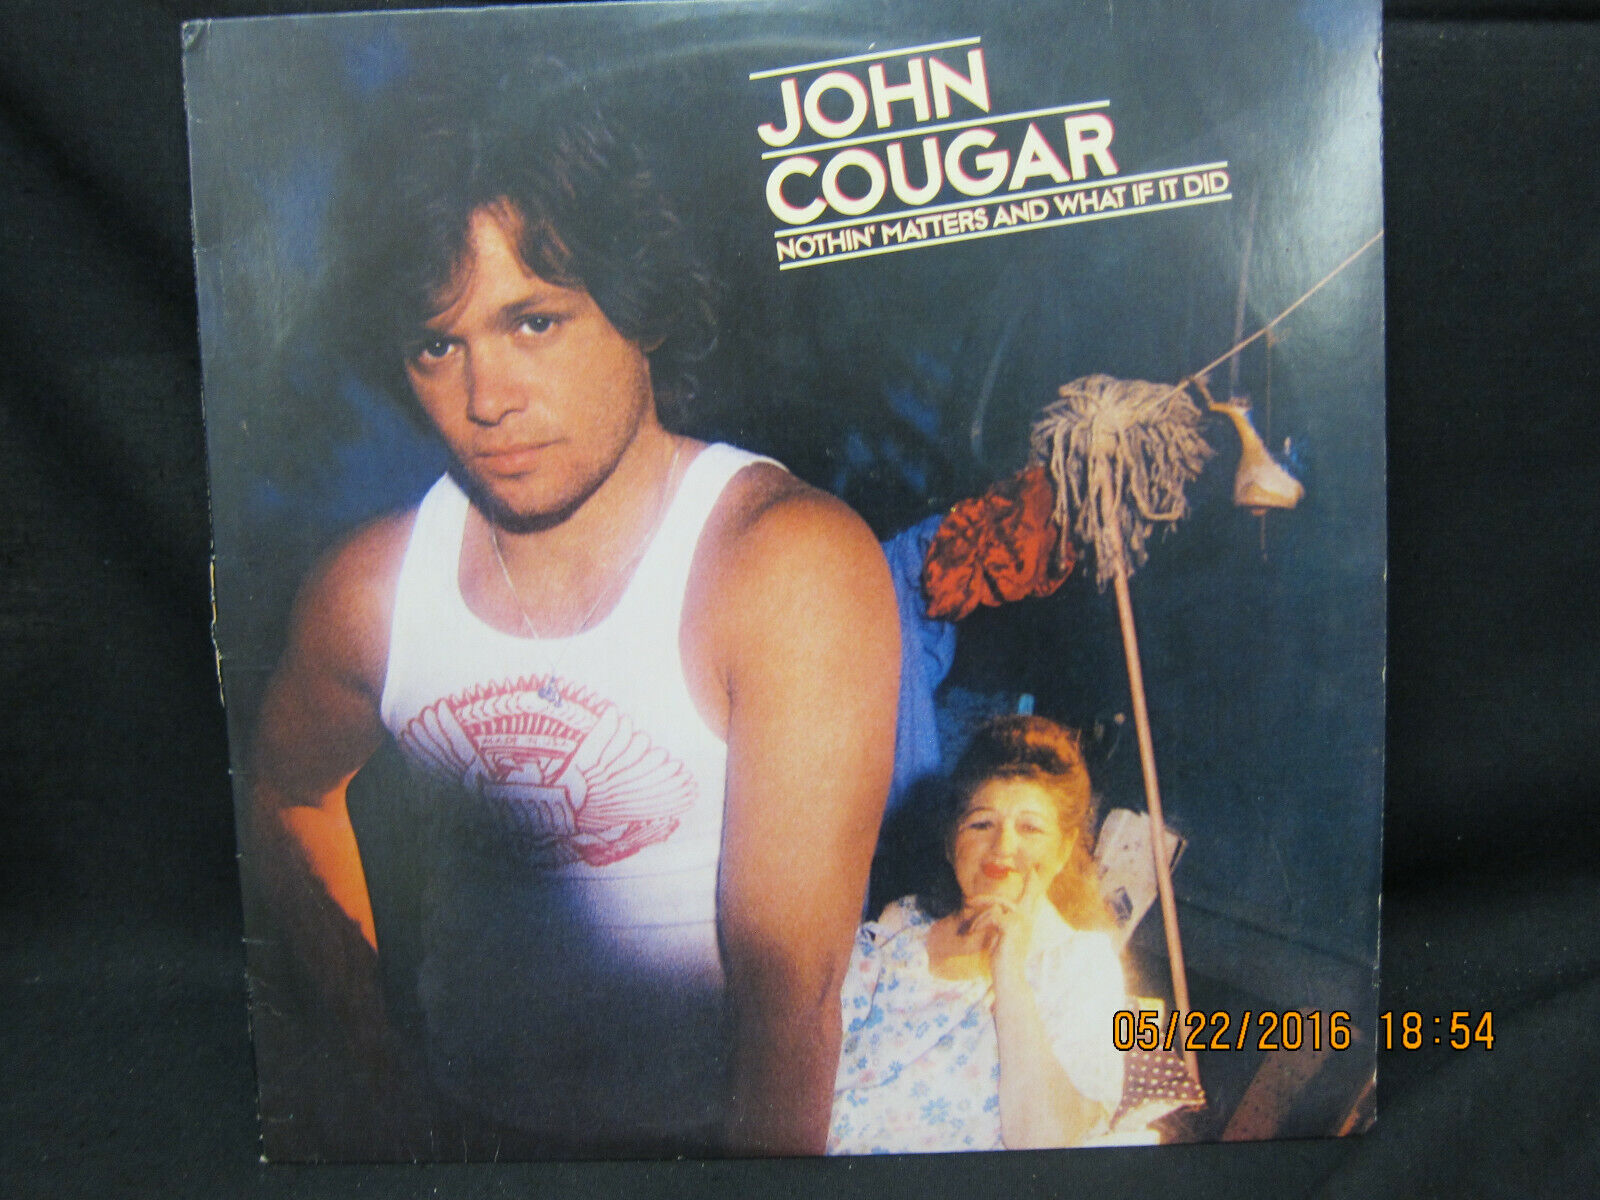 John Cougar - Nothin Matters And What If It Did - Riva Records - $7.99